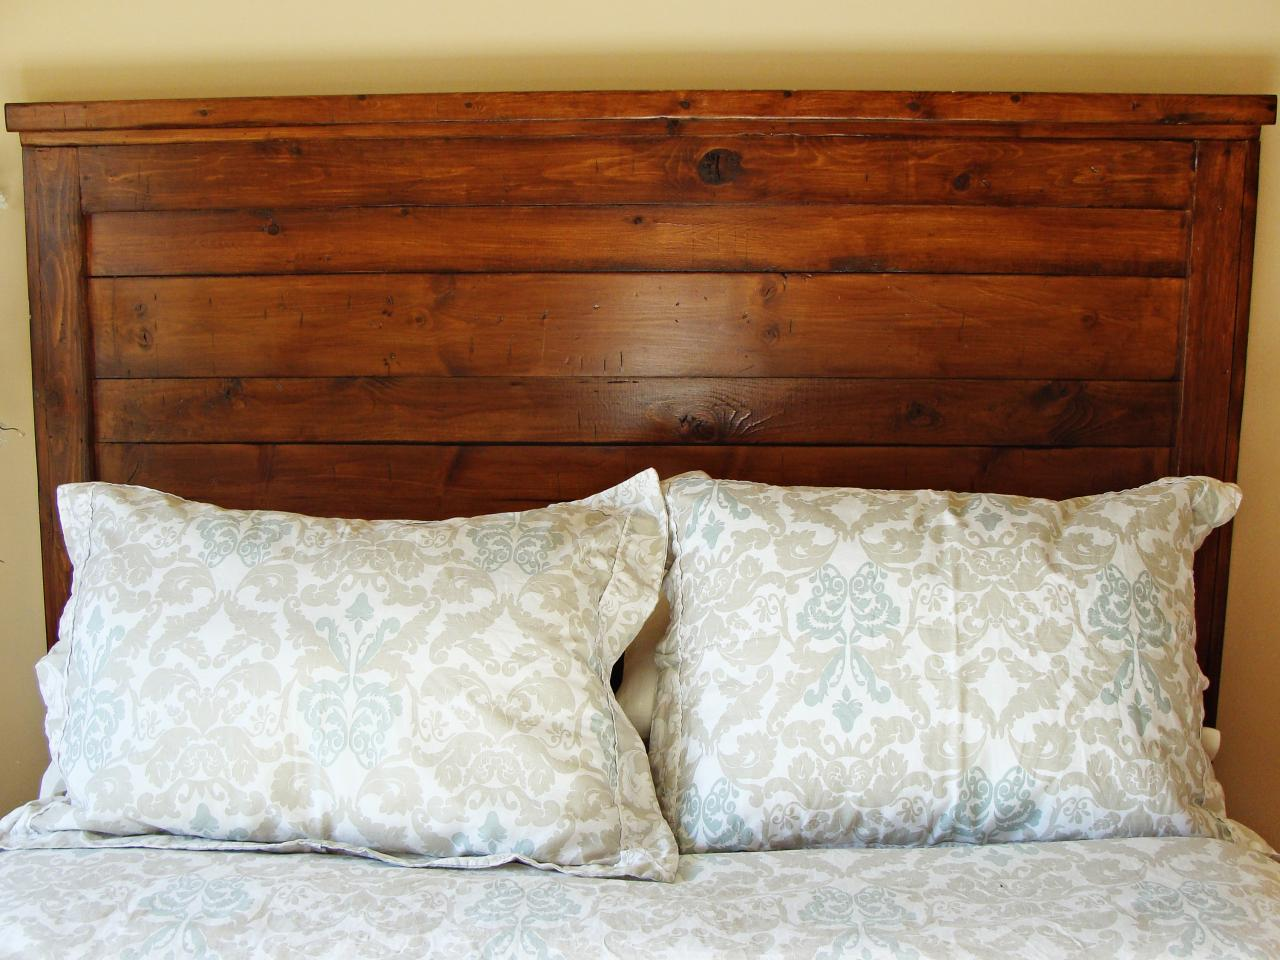 Design Wood Headboards how to build a rustic wood headboard tos diy step 11